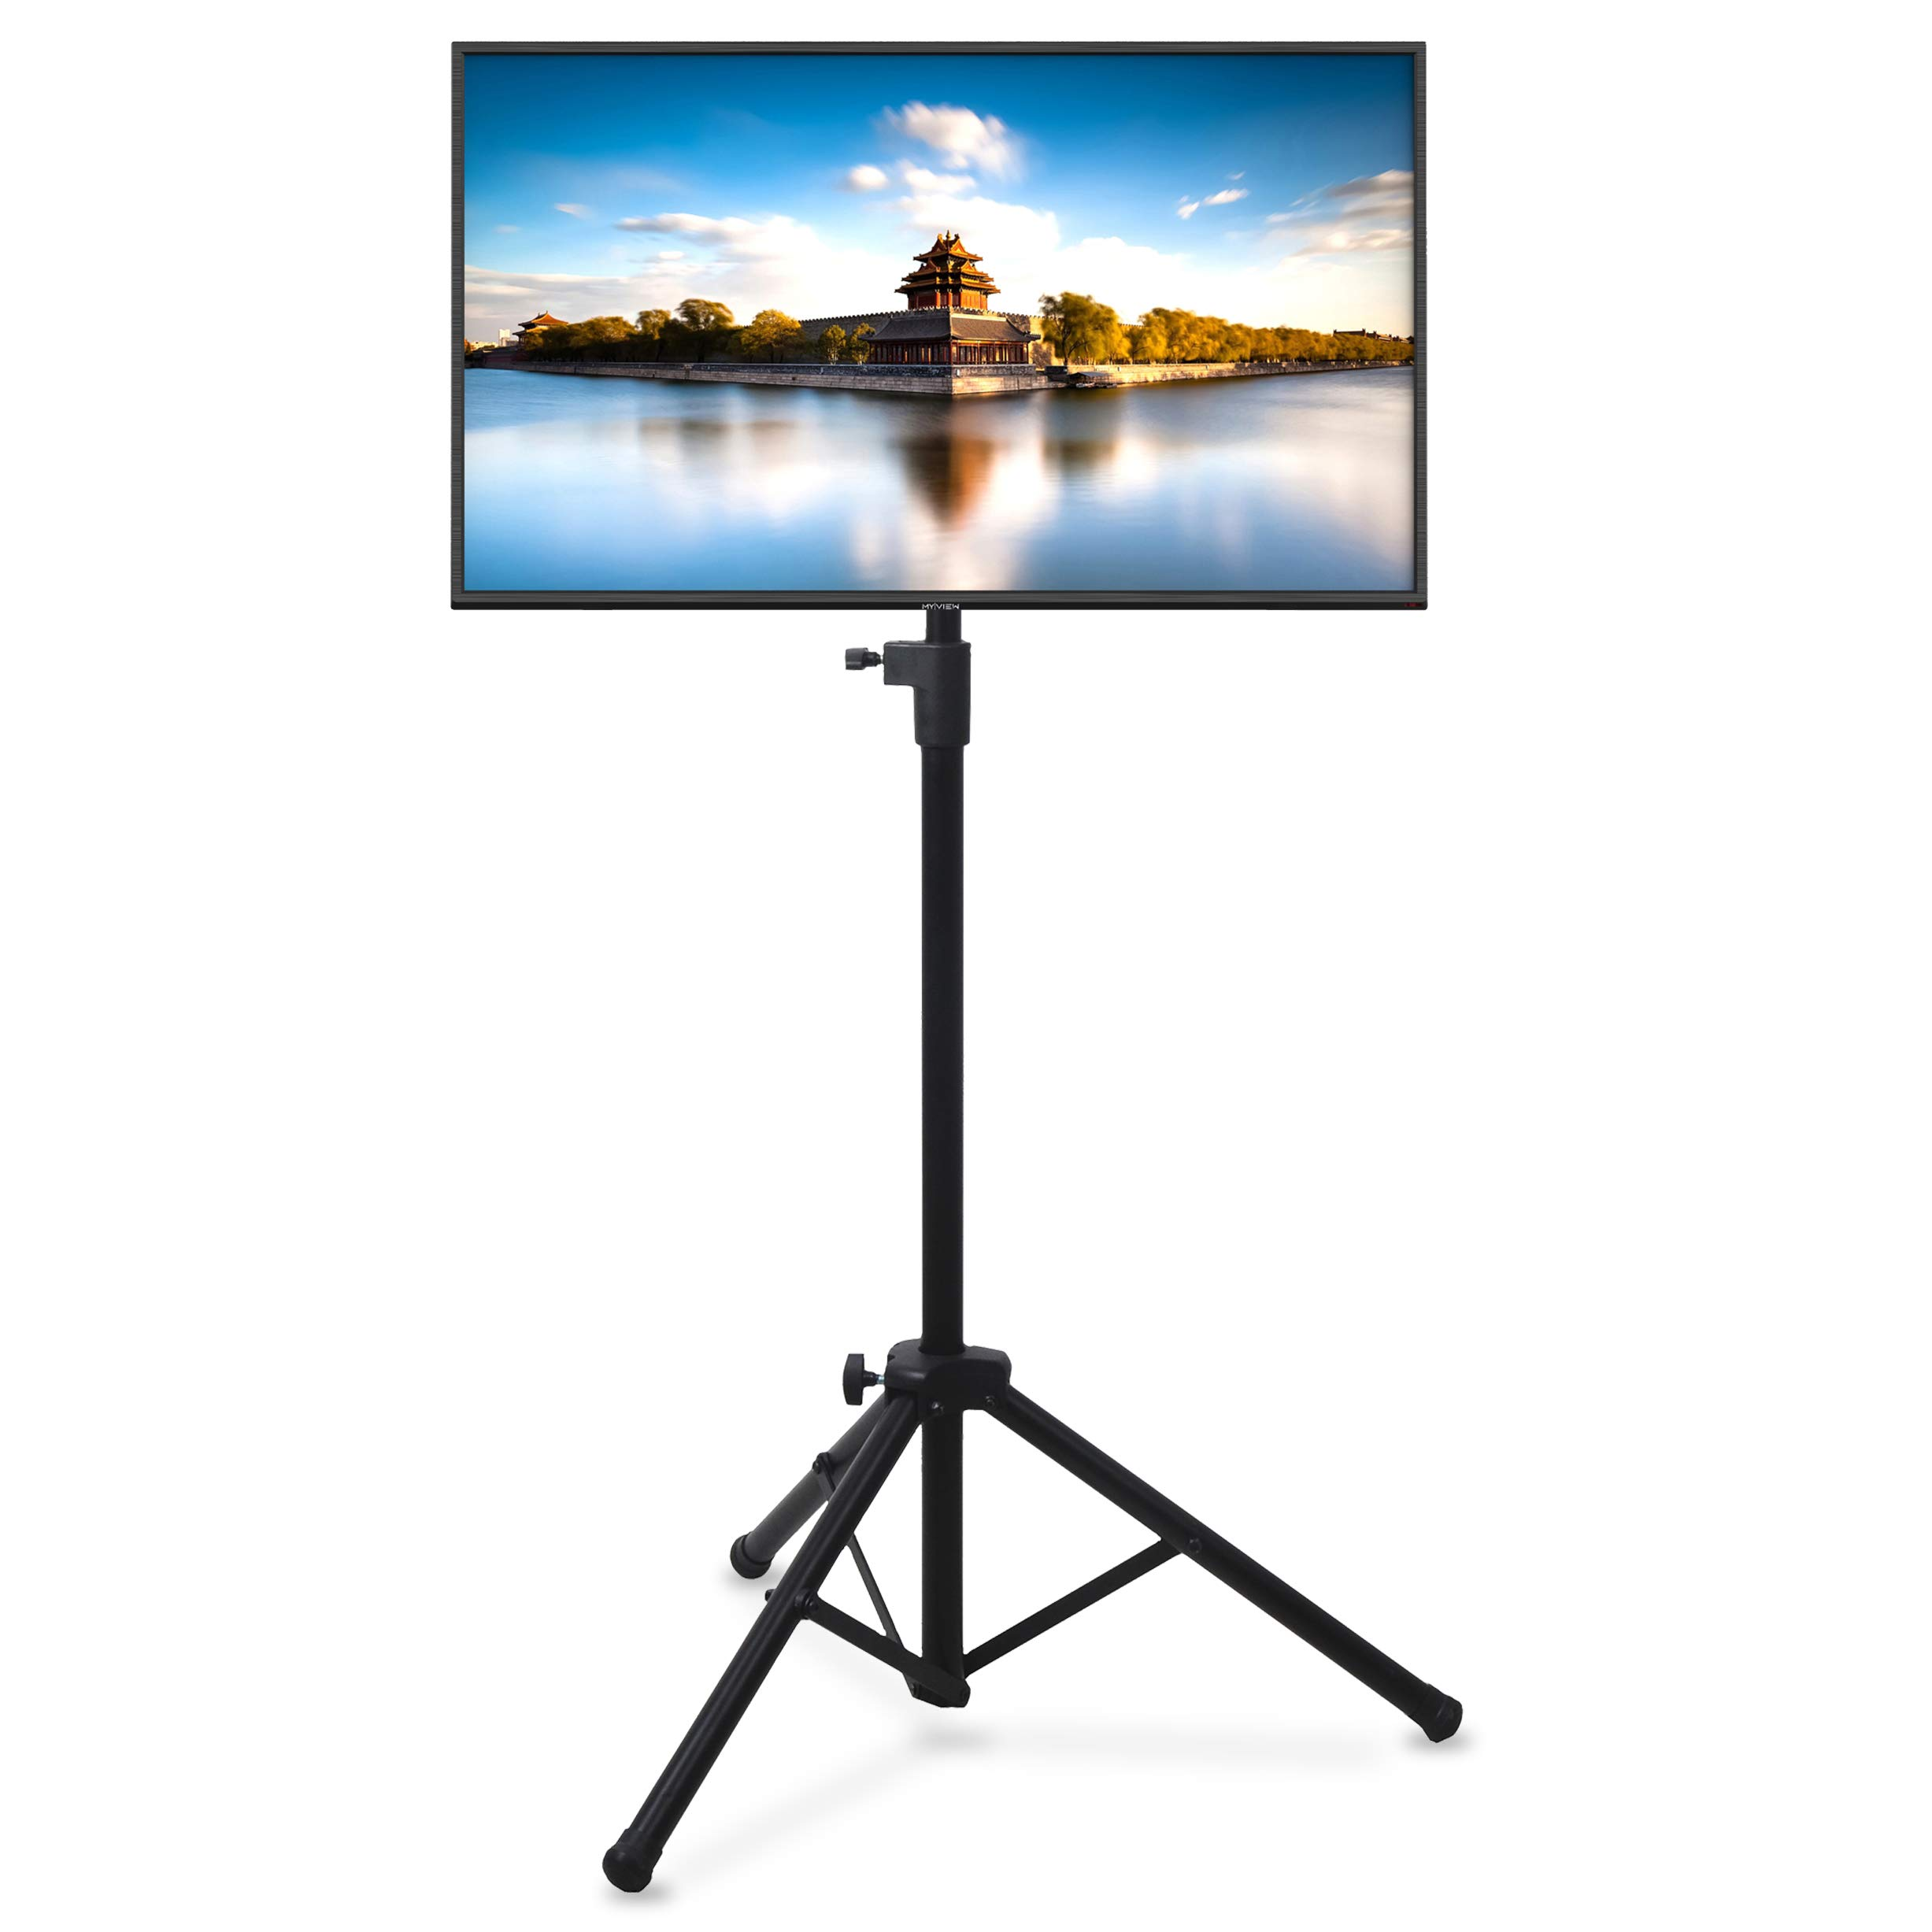 Pyle Premium LCD Flat Panel TV Tripod, Portable TV Stand, Foldable Stand Mount, Fits LCD LED Flat Screen TV Up To 32'', Adjustable Height, 22 lbs Weight Capacity, VESA 75x75, 100x100 (PTVSTNDPT3215) by Pyle